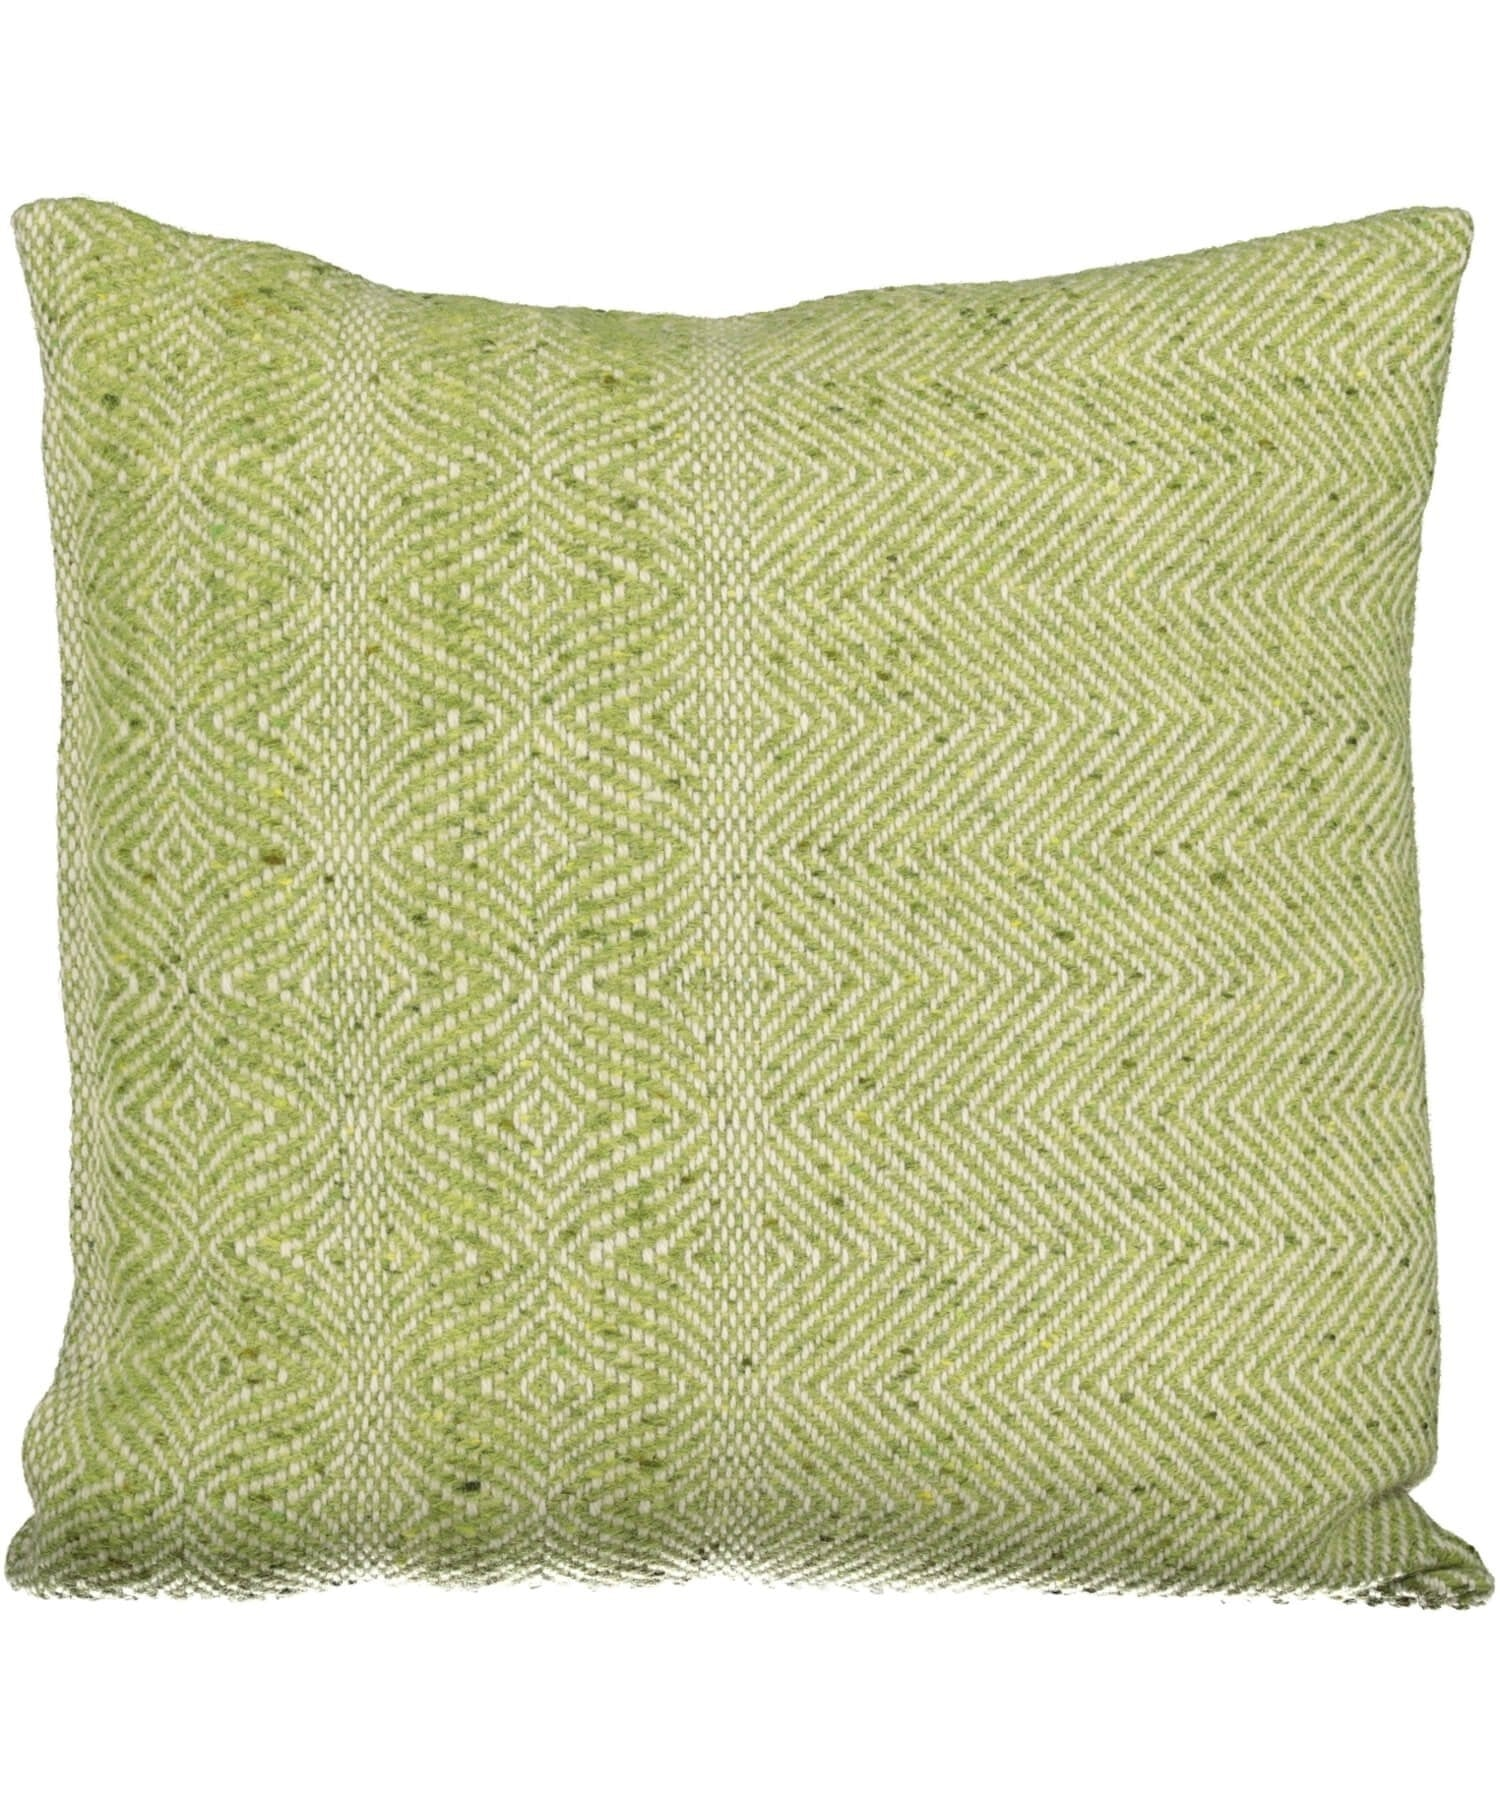 Handwoven Tweed Cushion Cover - Lime - [Studio Donegal] - Throws & Cushions - Irish Gifts